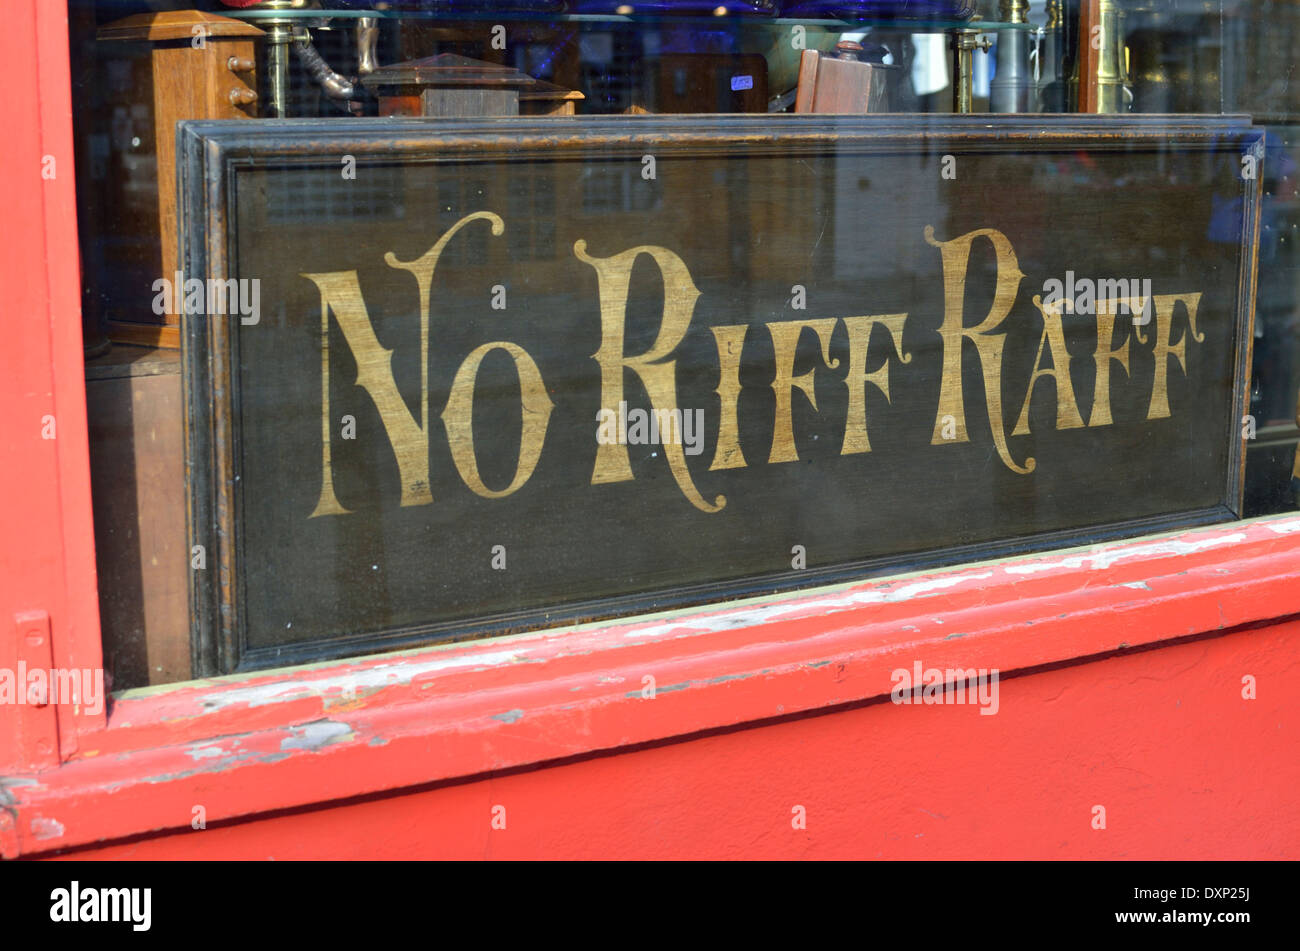 'No Riff Raff' sign in a shop window, London, UK - Stock Image